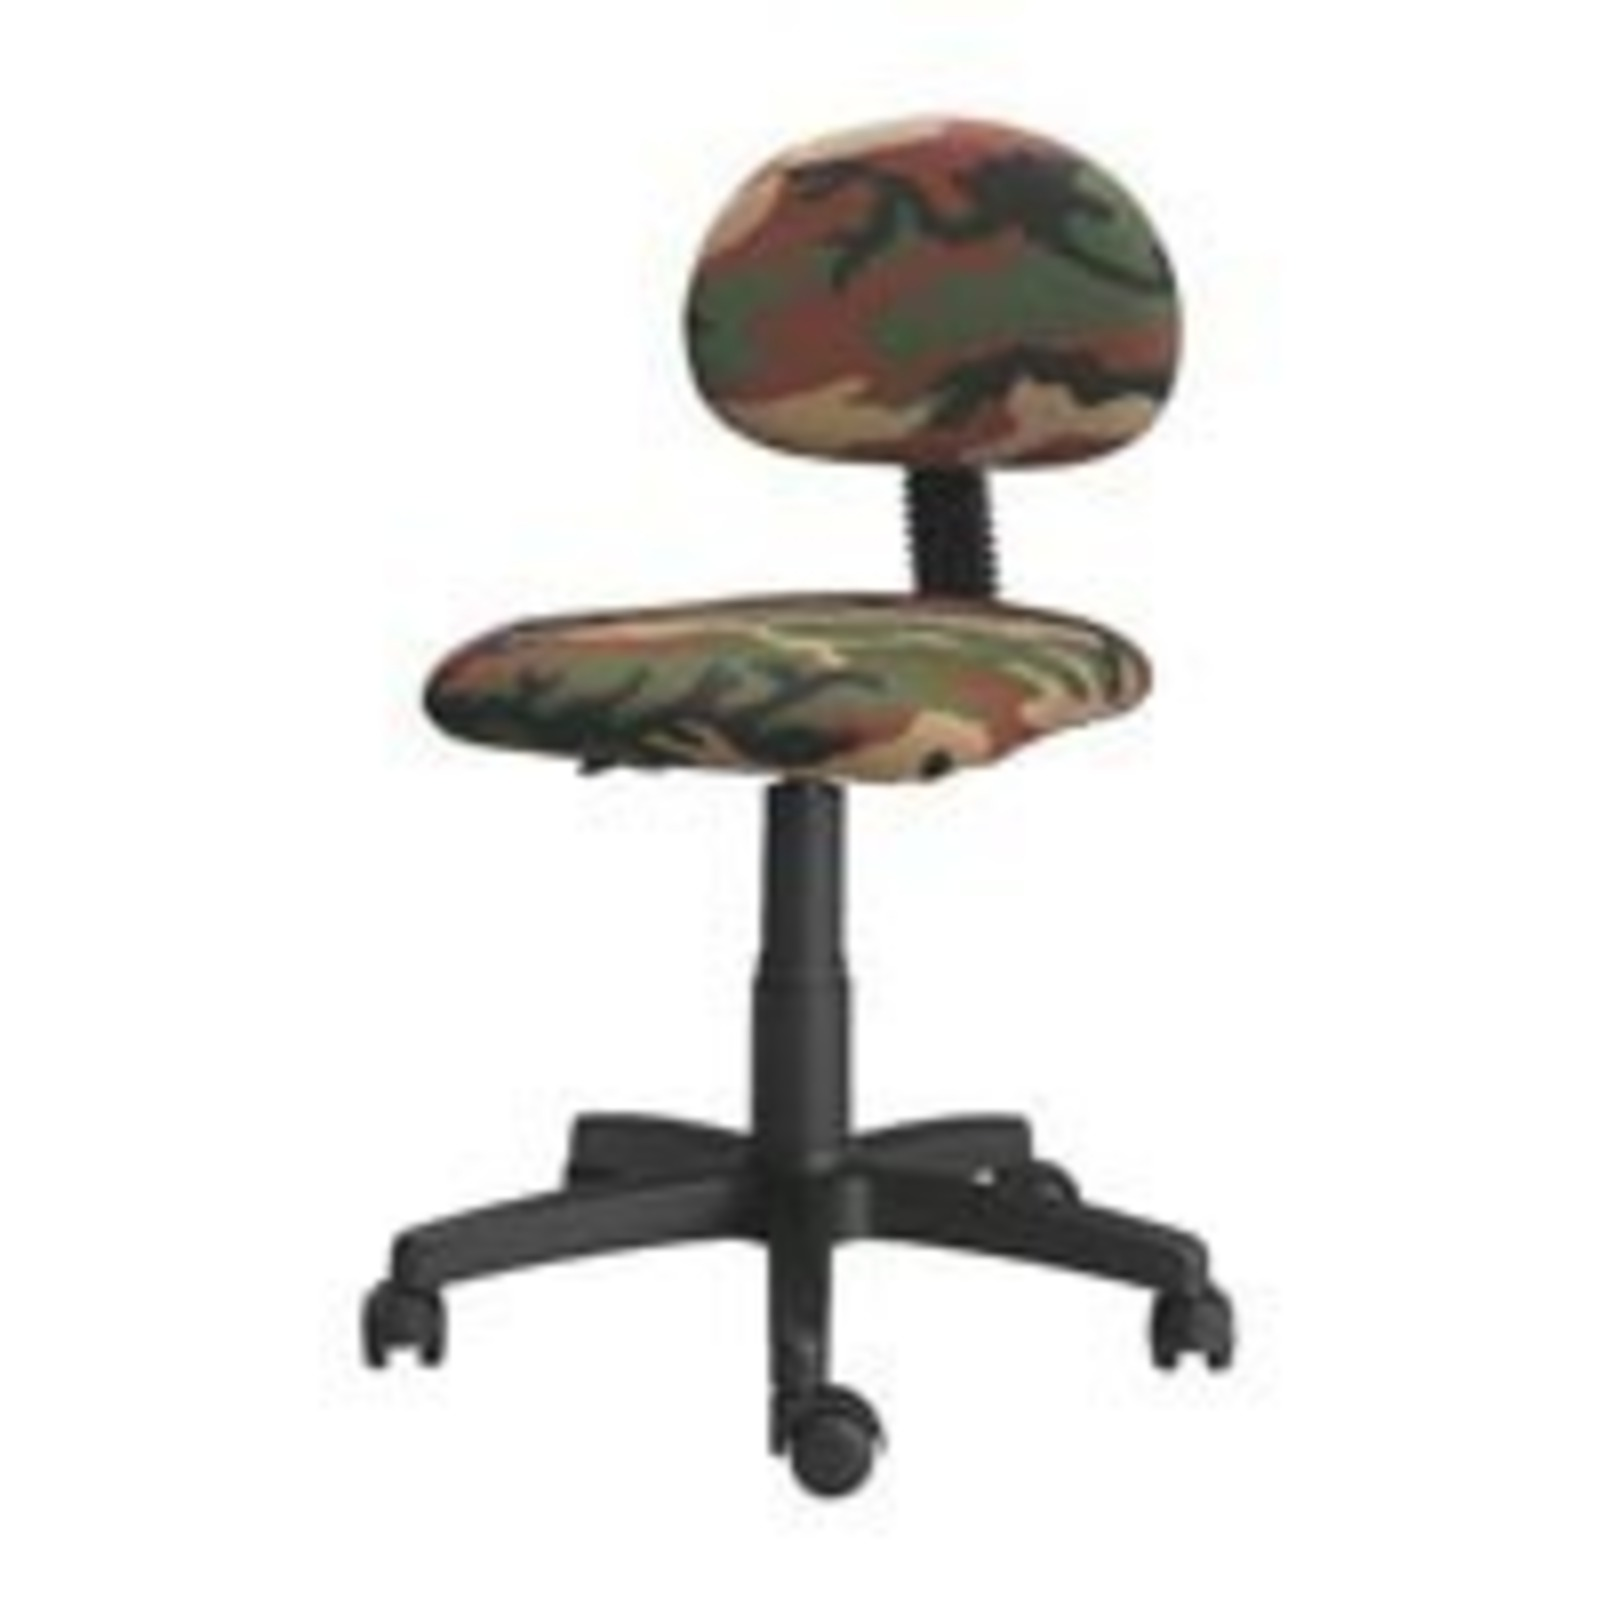 camo furniture cfm recliner master product pink button back brazil sassy hayneedle child